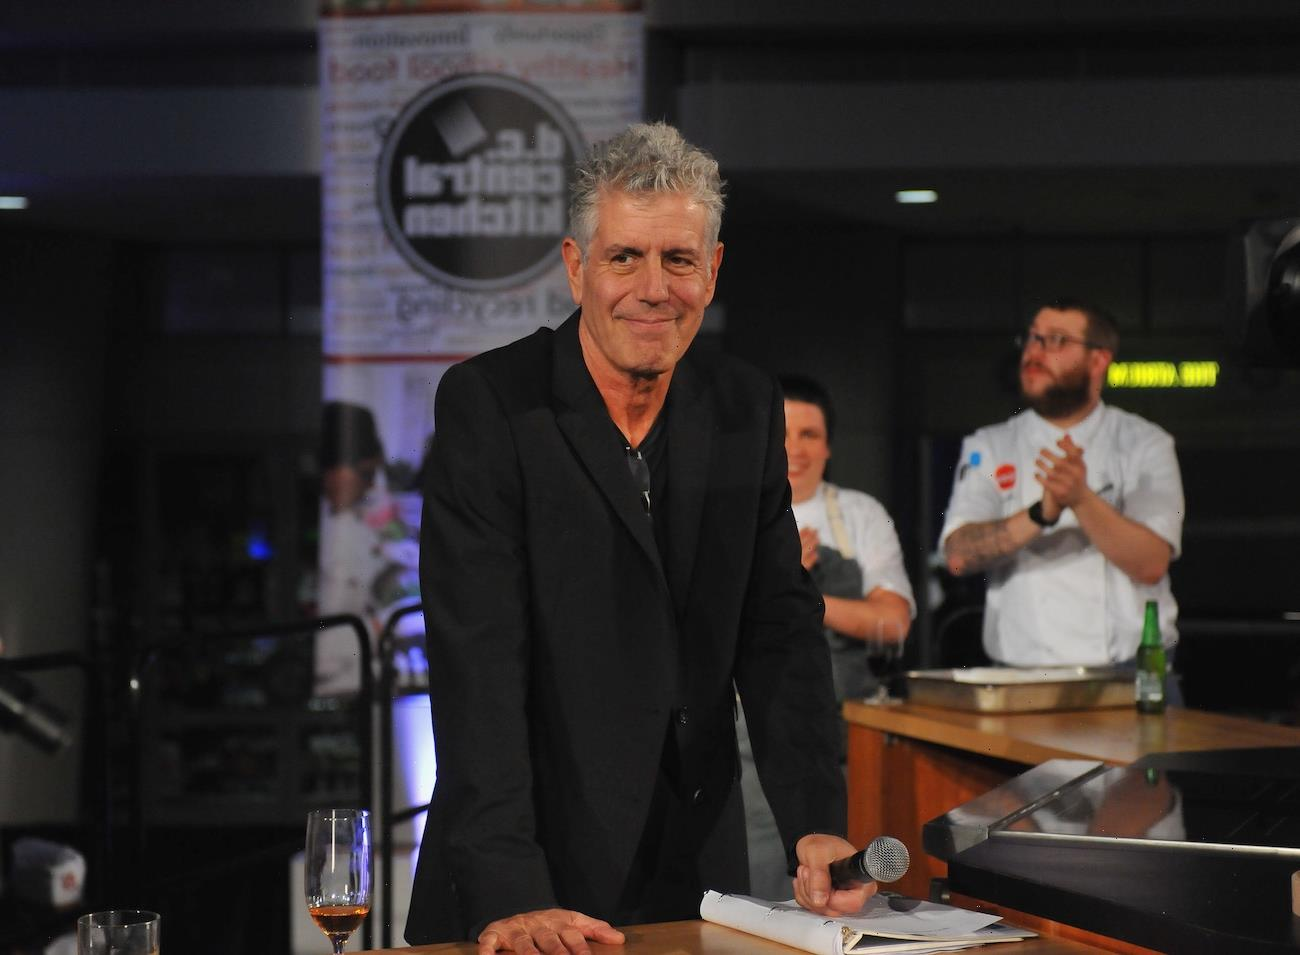 Anthony Bourdain Once Said Learning to Roast a Chicken Is an 'Obligation': 'It's a Life Skill That Should Be Taught to Small Children'